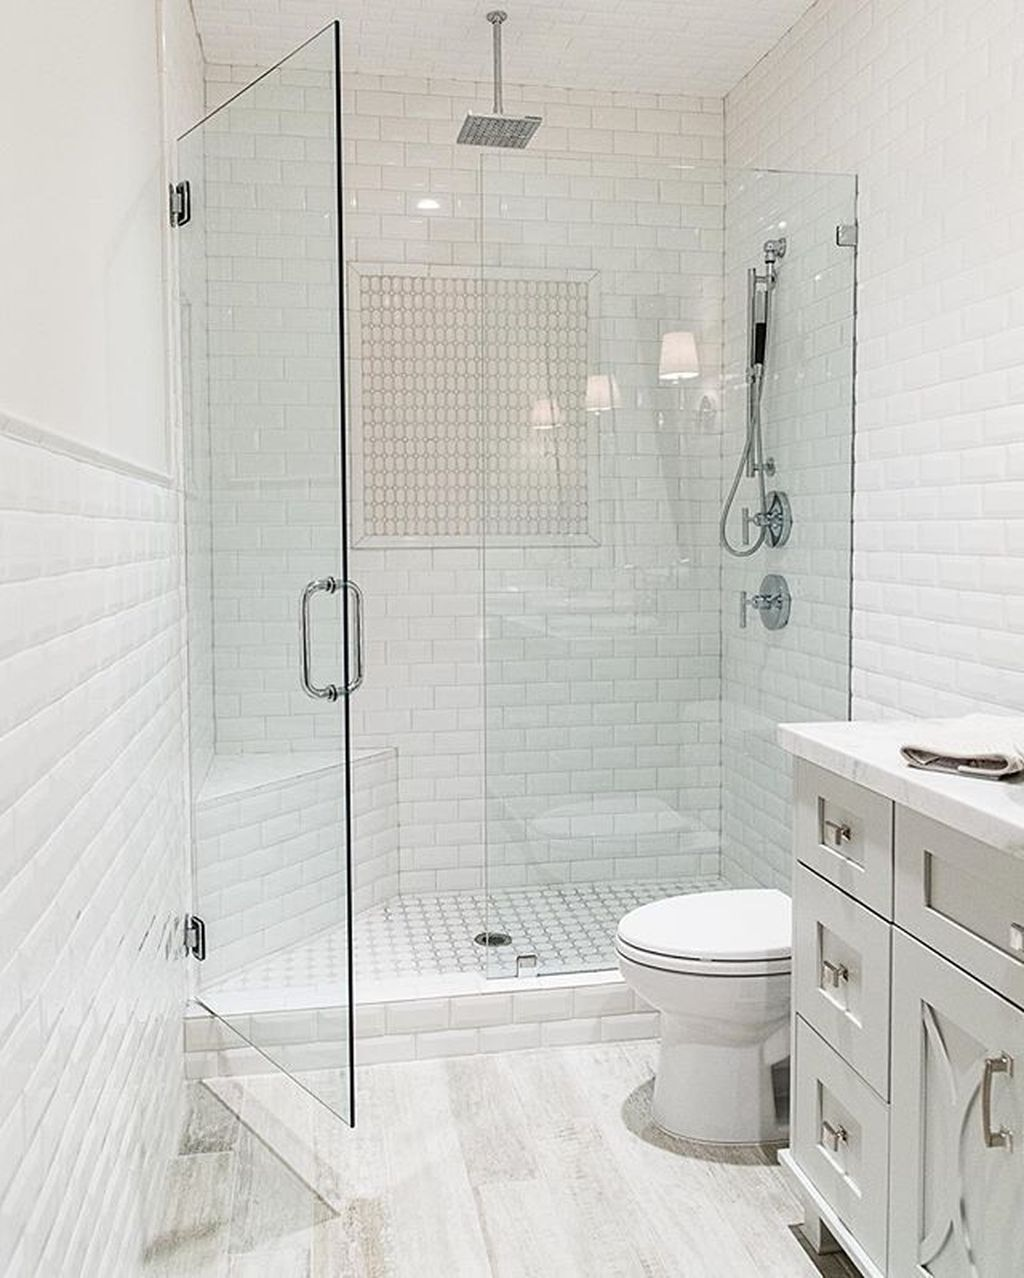 42 Perfect Shower Design Ideas To Remodel Your Bathroom Small Bathroom Bathrooms Remodel Small Bathroom Remodel